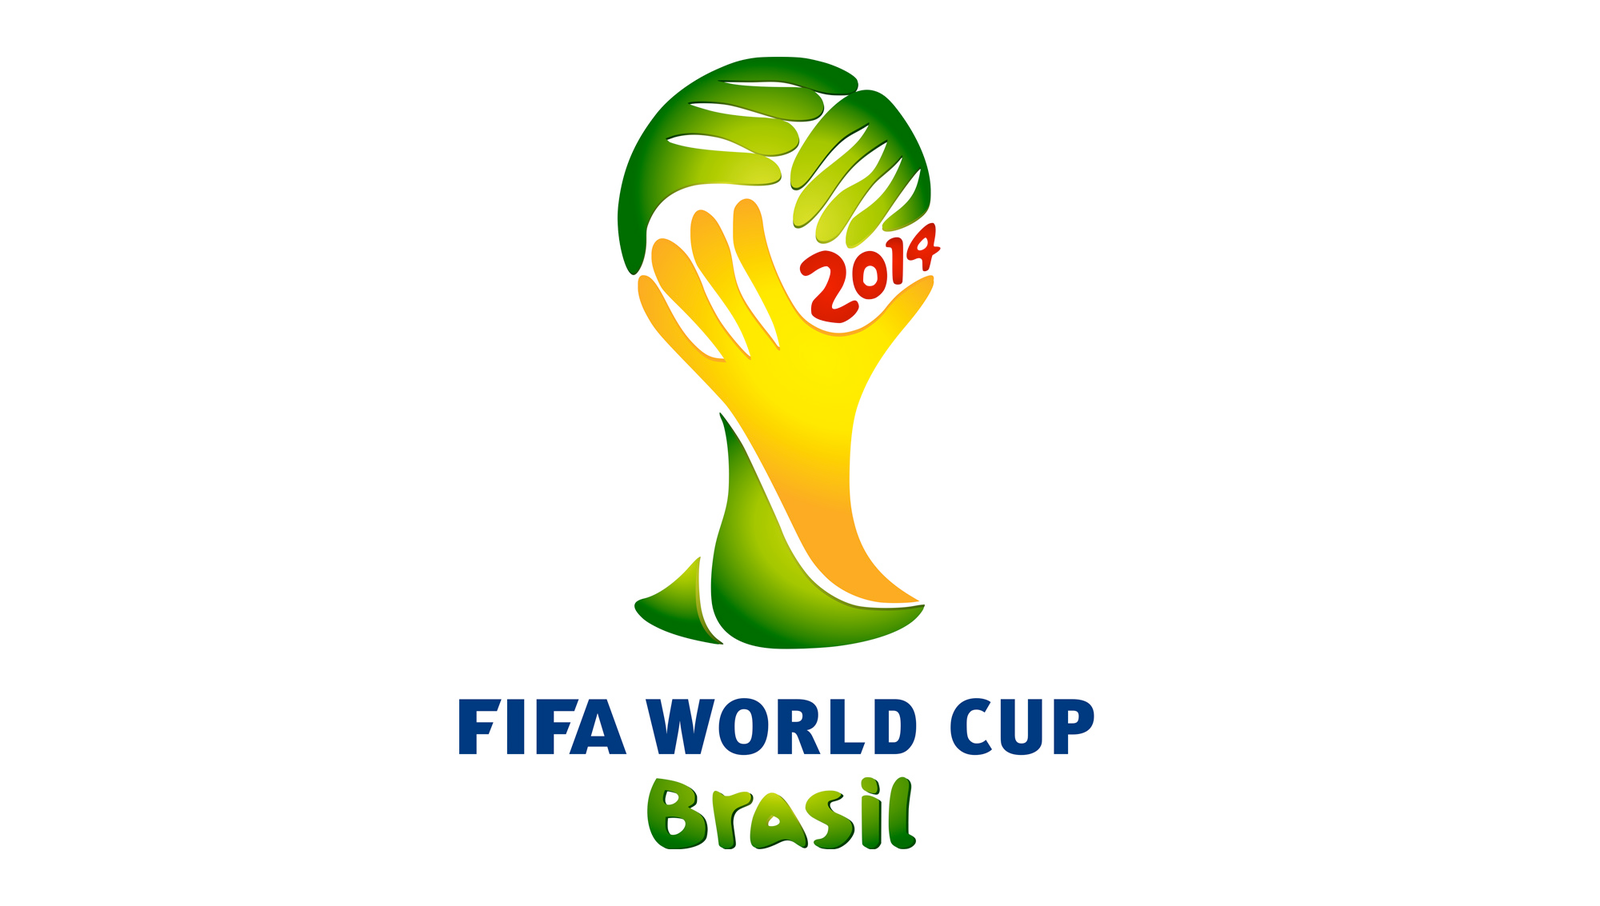 With the 2014 World Cup about to kick off in Brazil, Onion Sports breaks down the 11 teams to watch during the tournament.